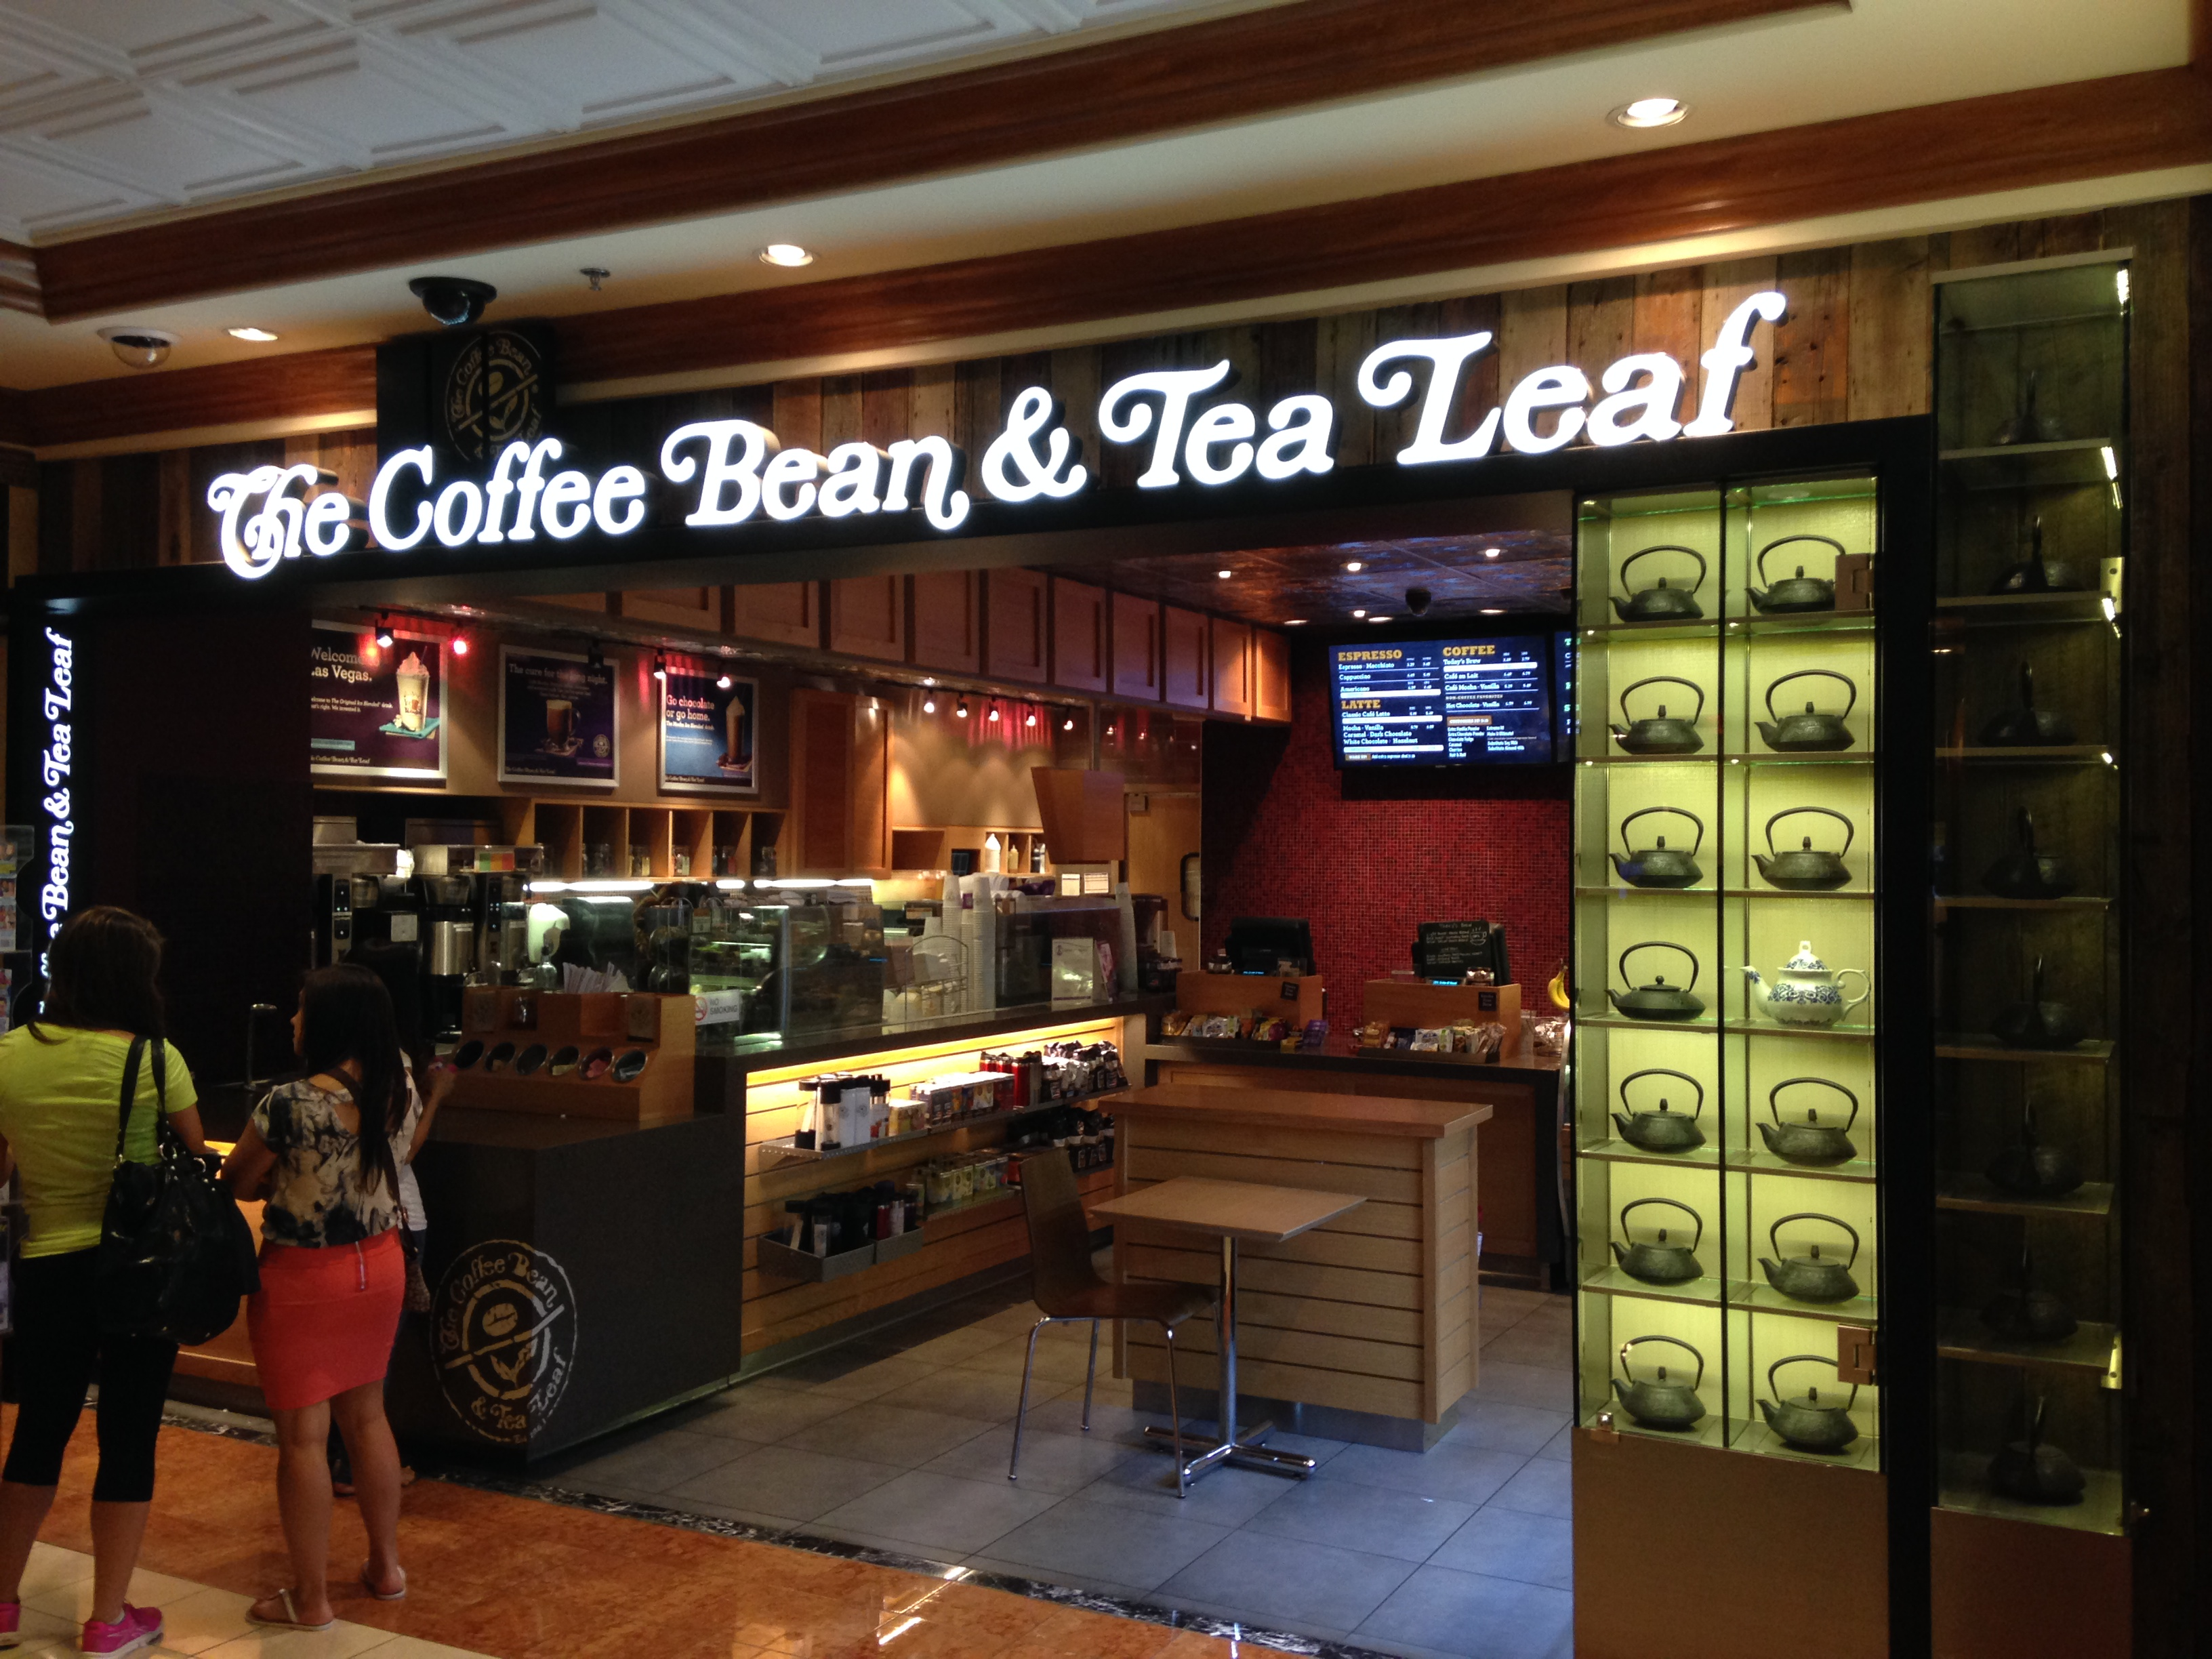 4 Kosher Coffee Bean Tea Leaf Locations On Near The Las Vegas Strip Yeahthatskosher